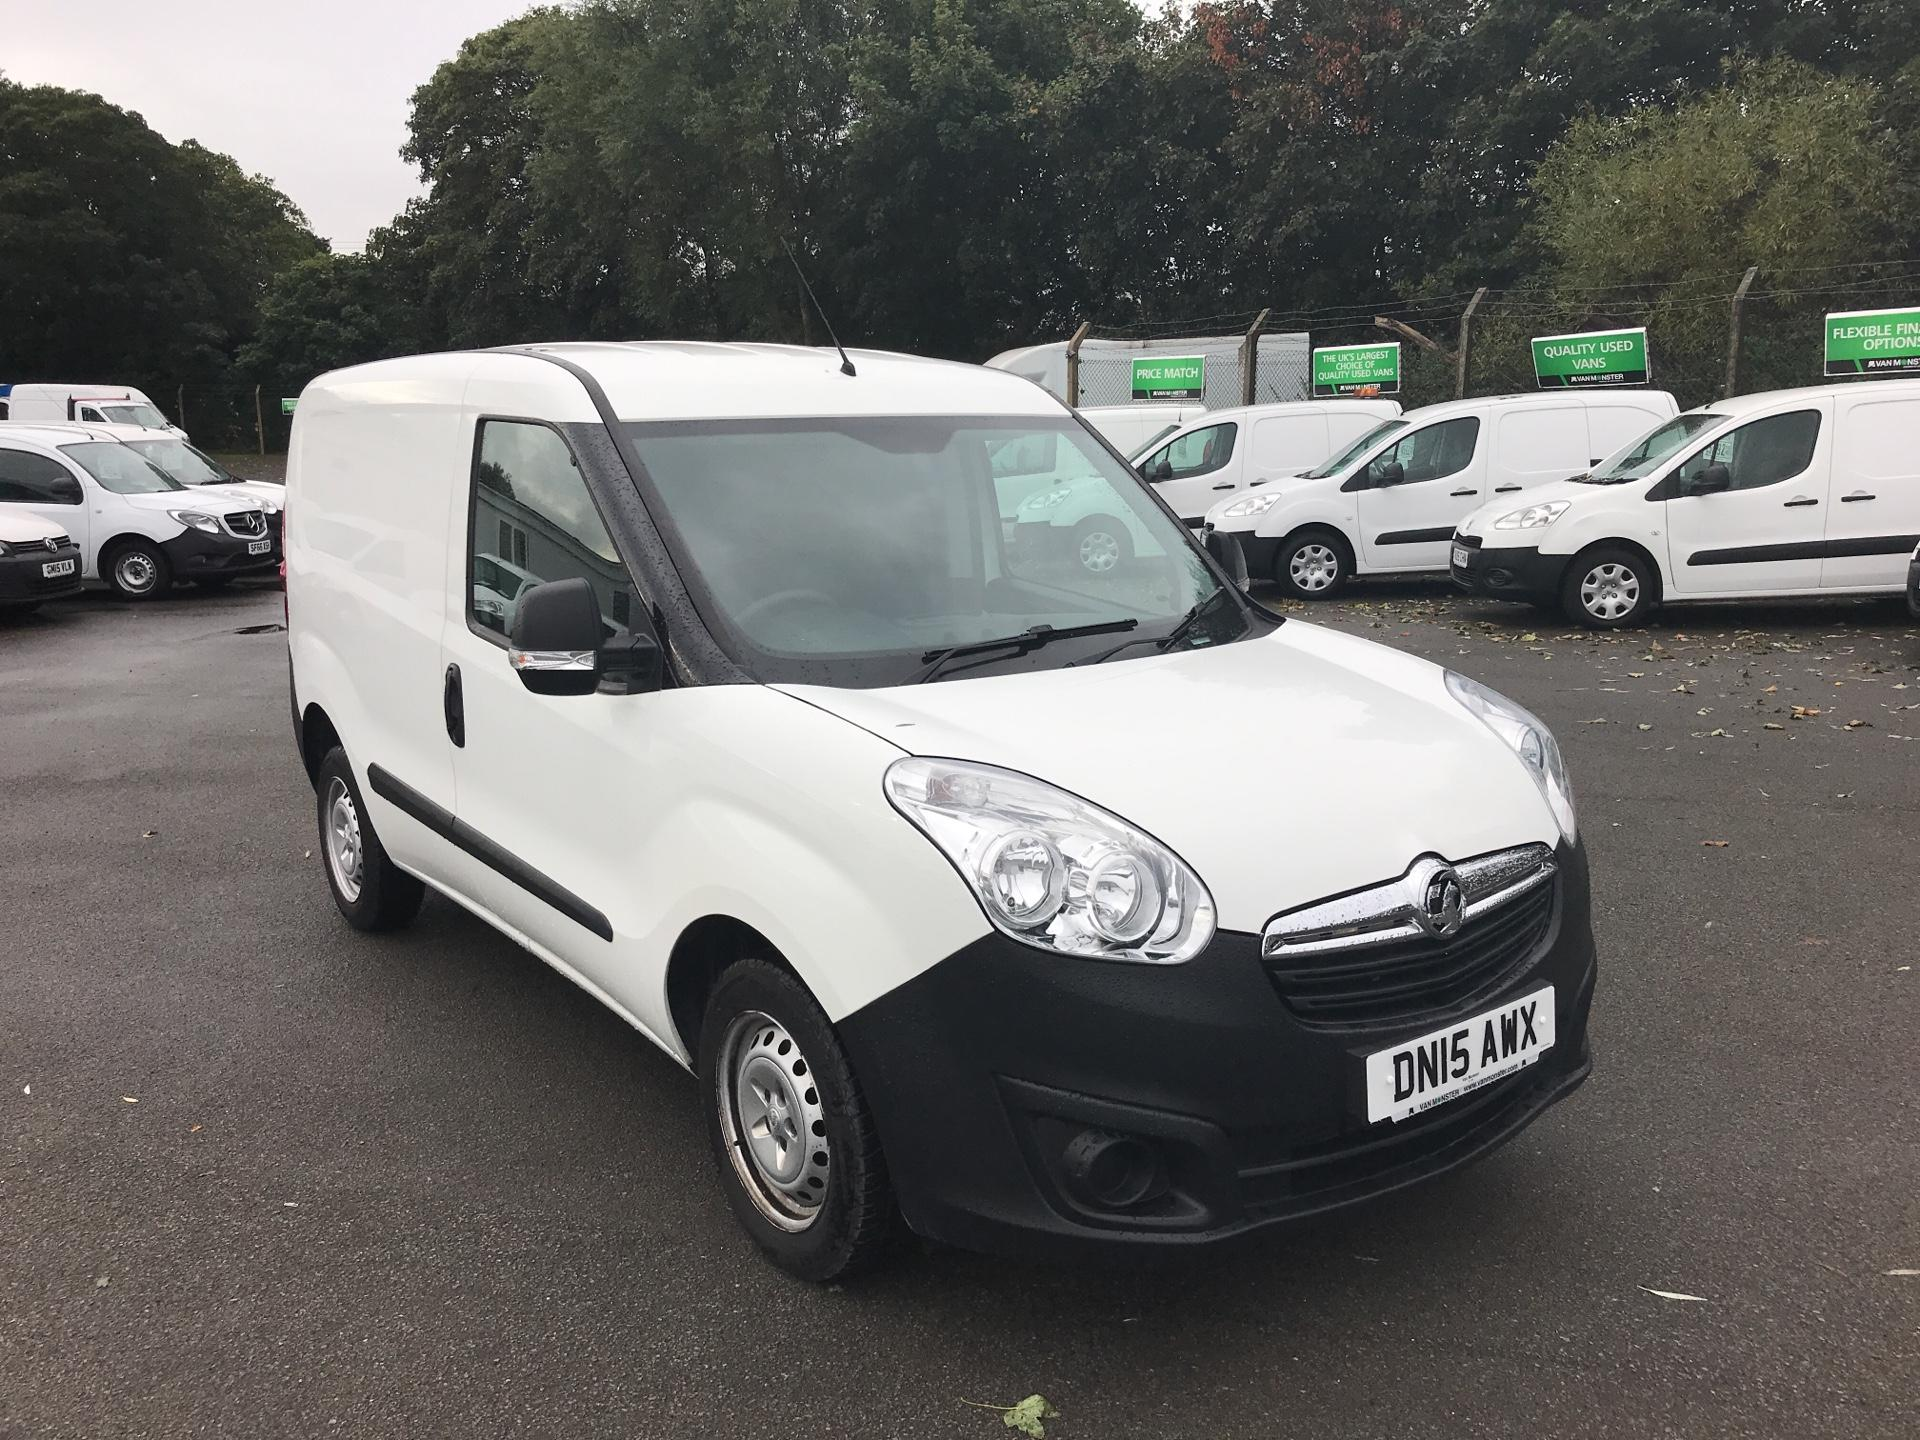 2015 Vauxhall Combo  L1 H1 2000 1.3 16V EURO 5 *VALUE RANGE VEHICLE - CONDITION REFLECTED IN PRICE* (DN15AWX)